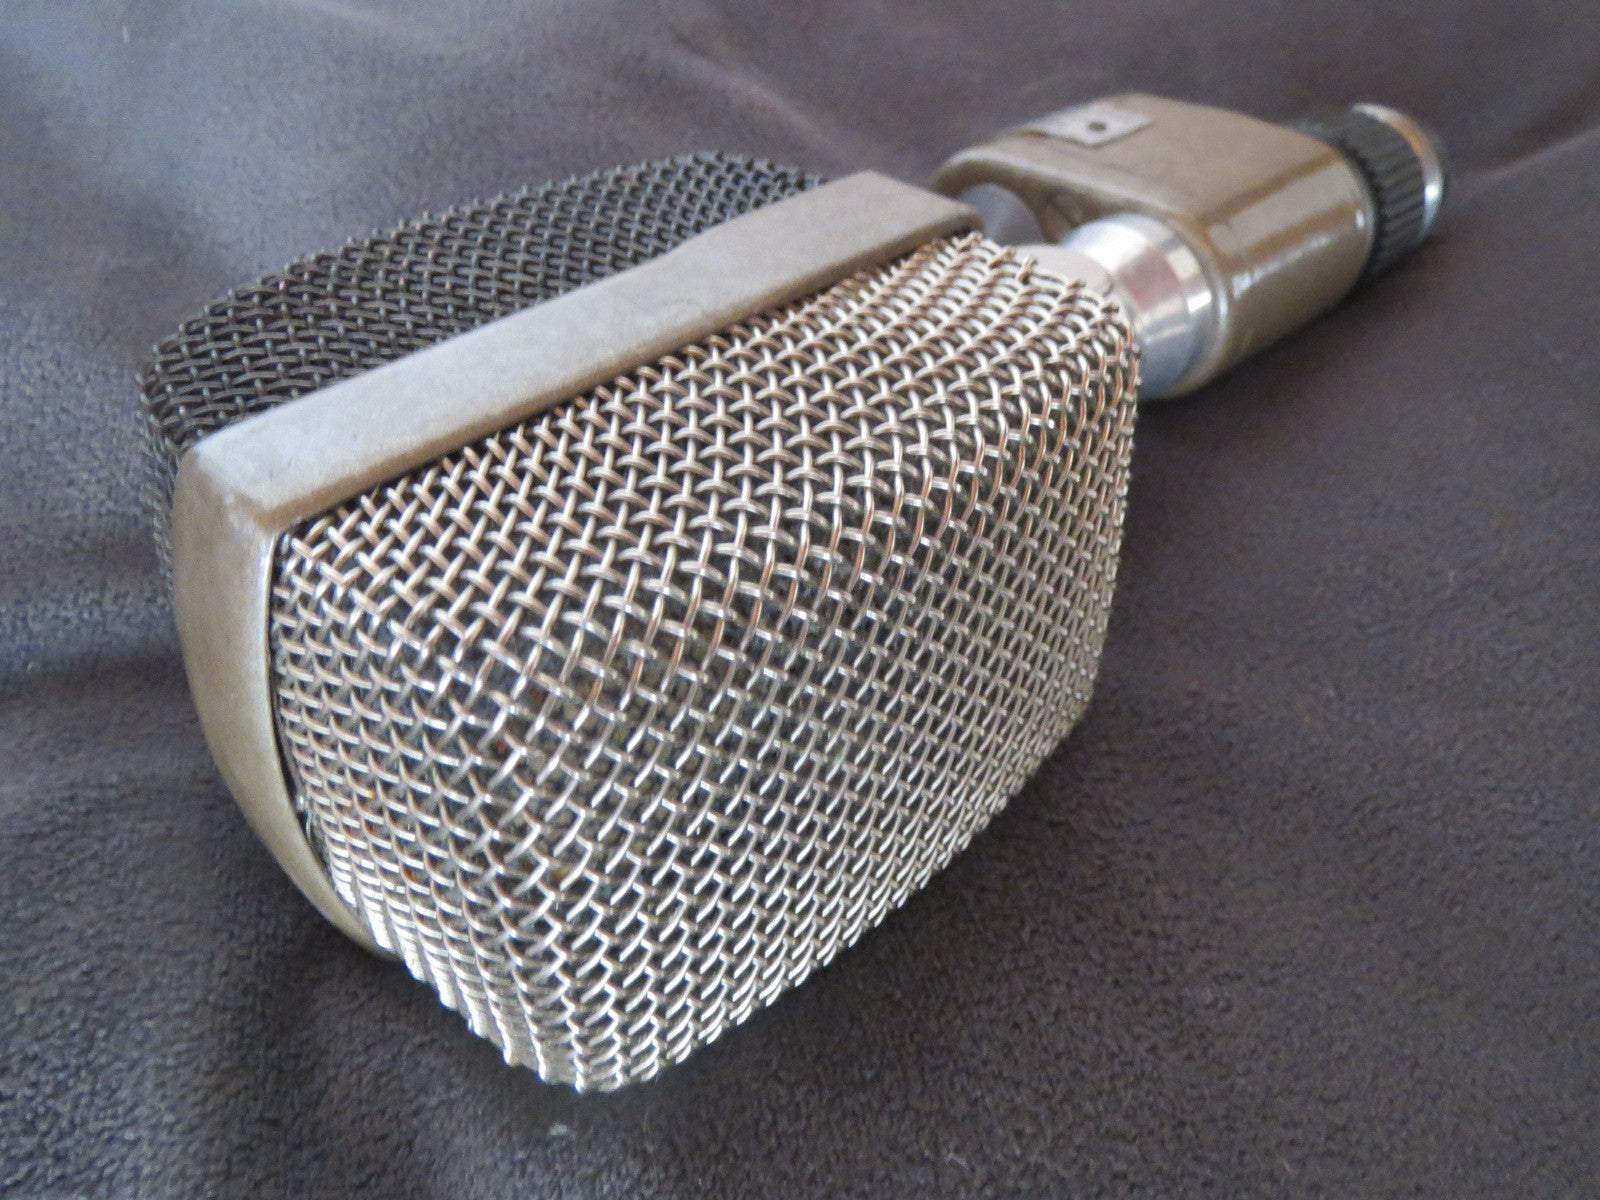 AKG D20 RARE VINTAGE DYNAMIC MICROPHONE INCLUDING XLR CABLE, SAME CAPSULE AS D12